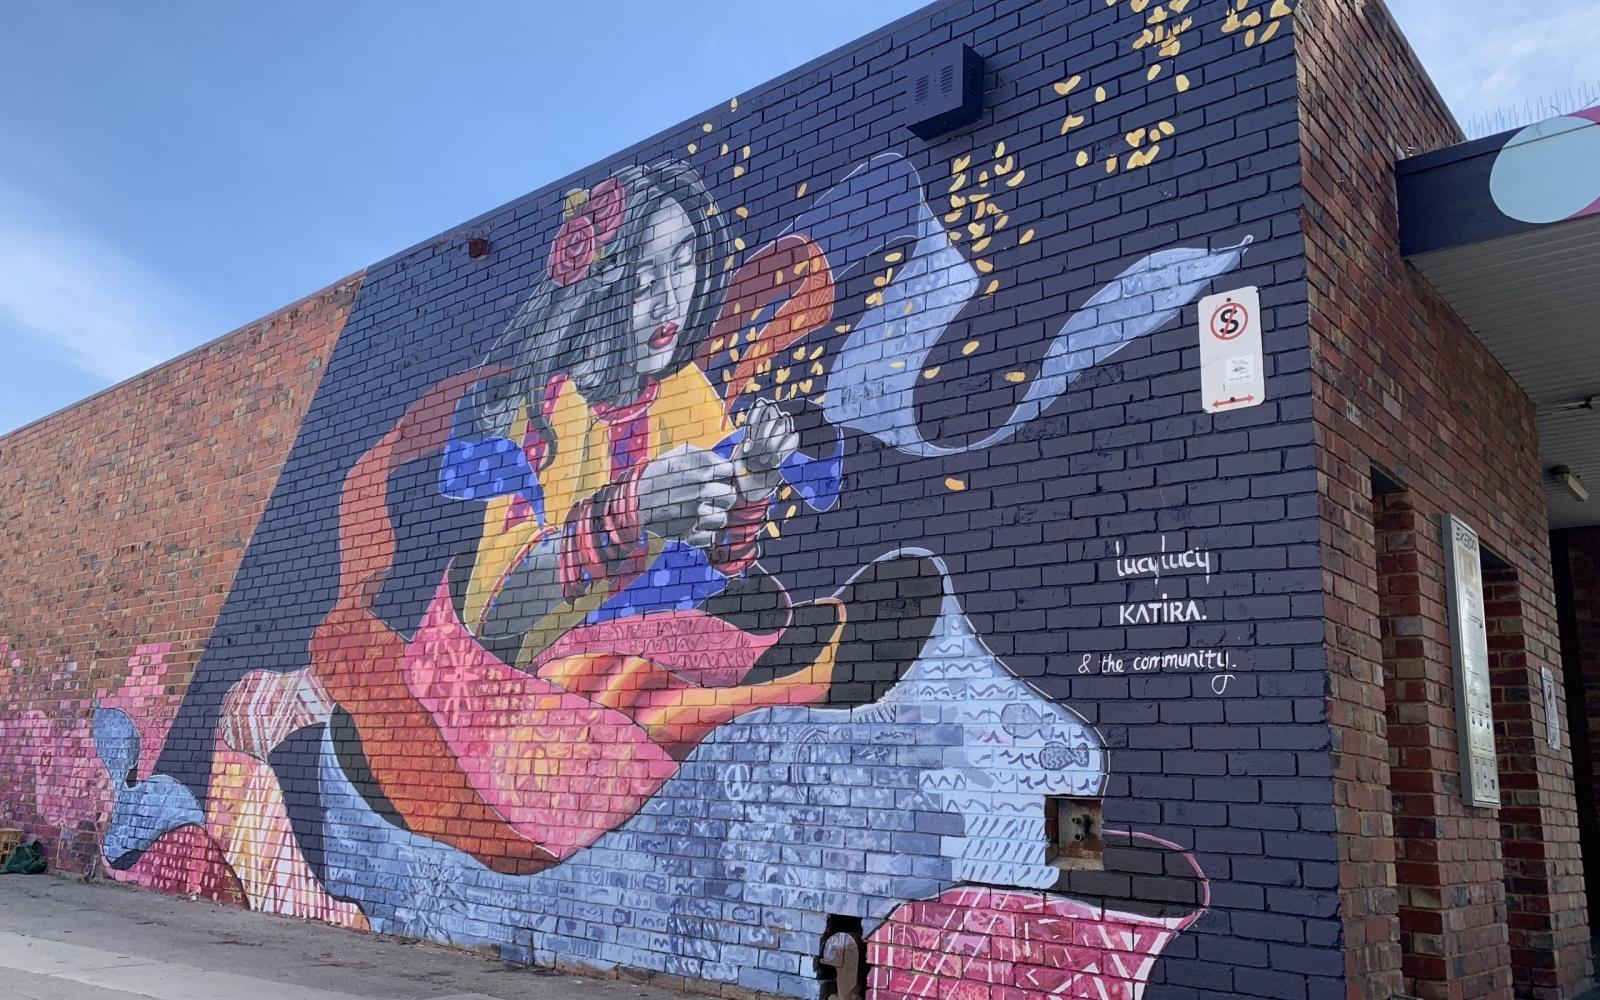 Mural in Collab. with Lucy Lucy at Coburg Library